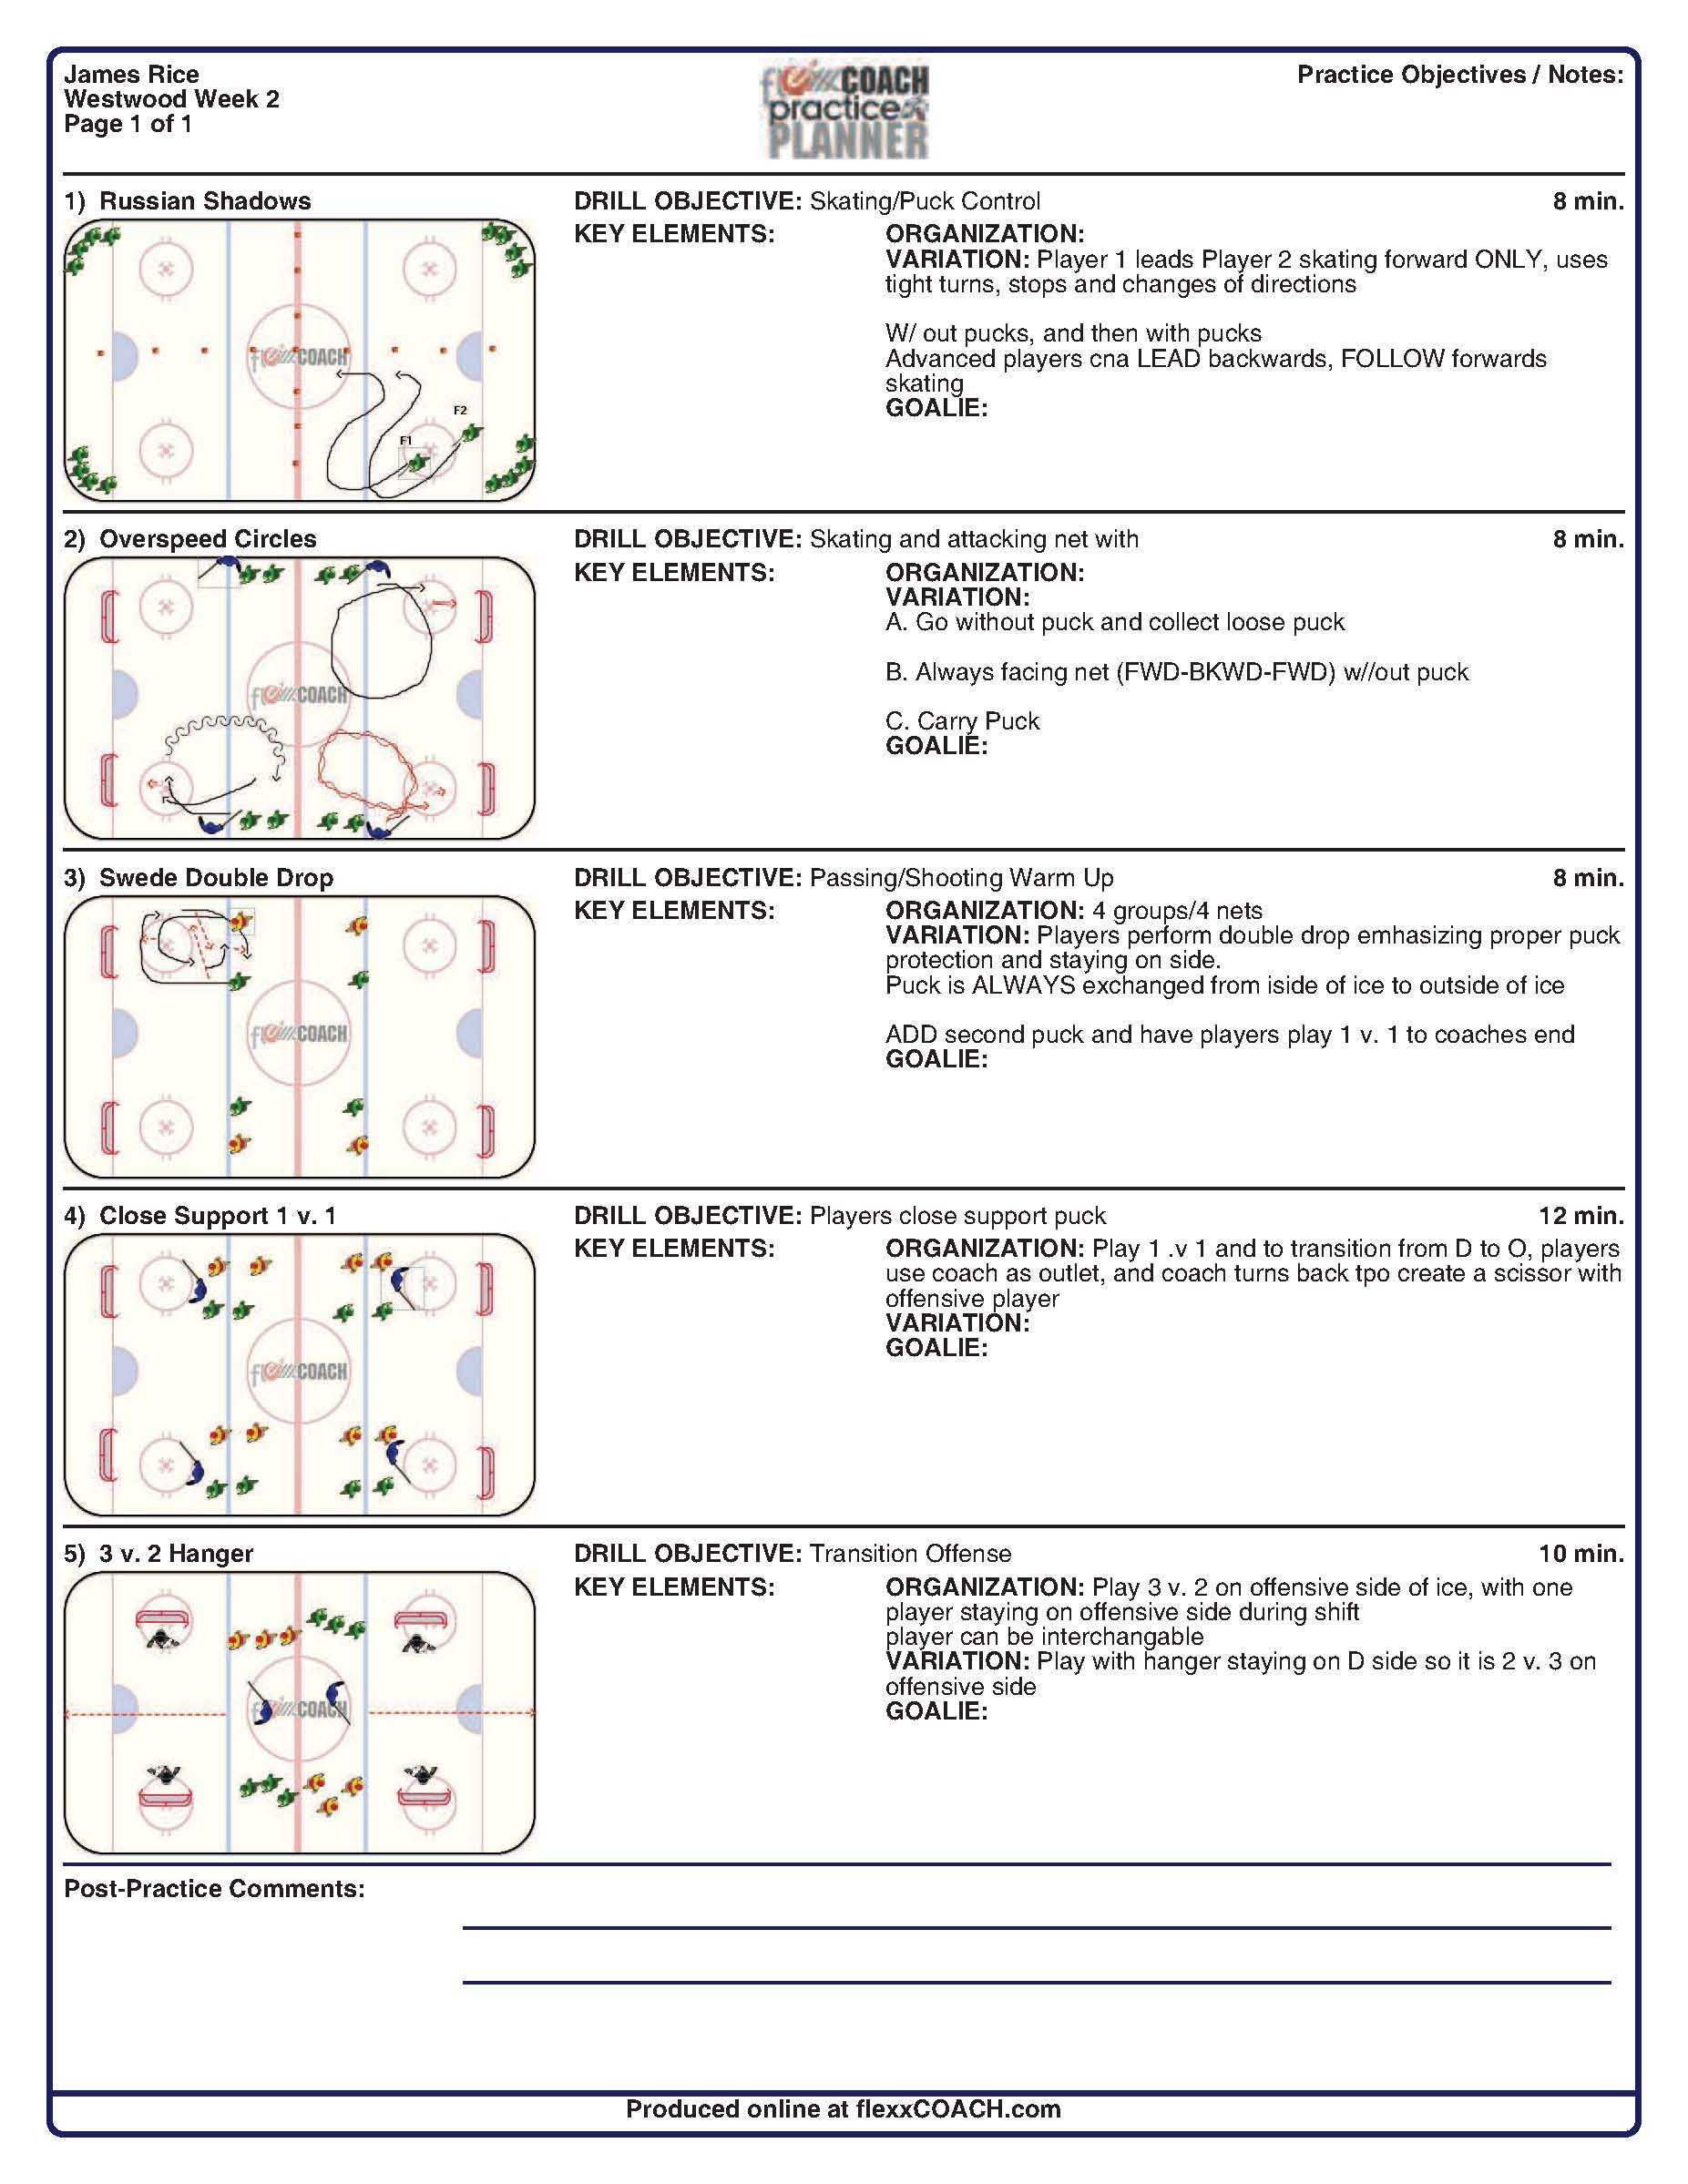 Drill Exchange For Blank Hockey Practice Plan Template